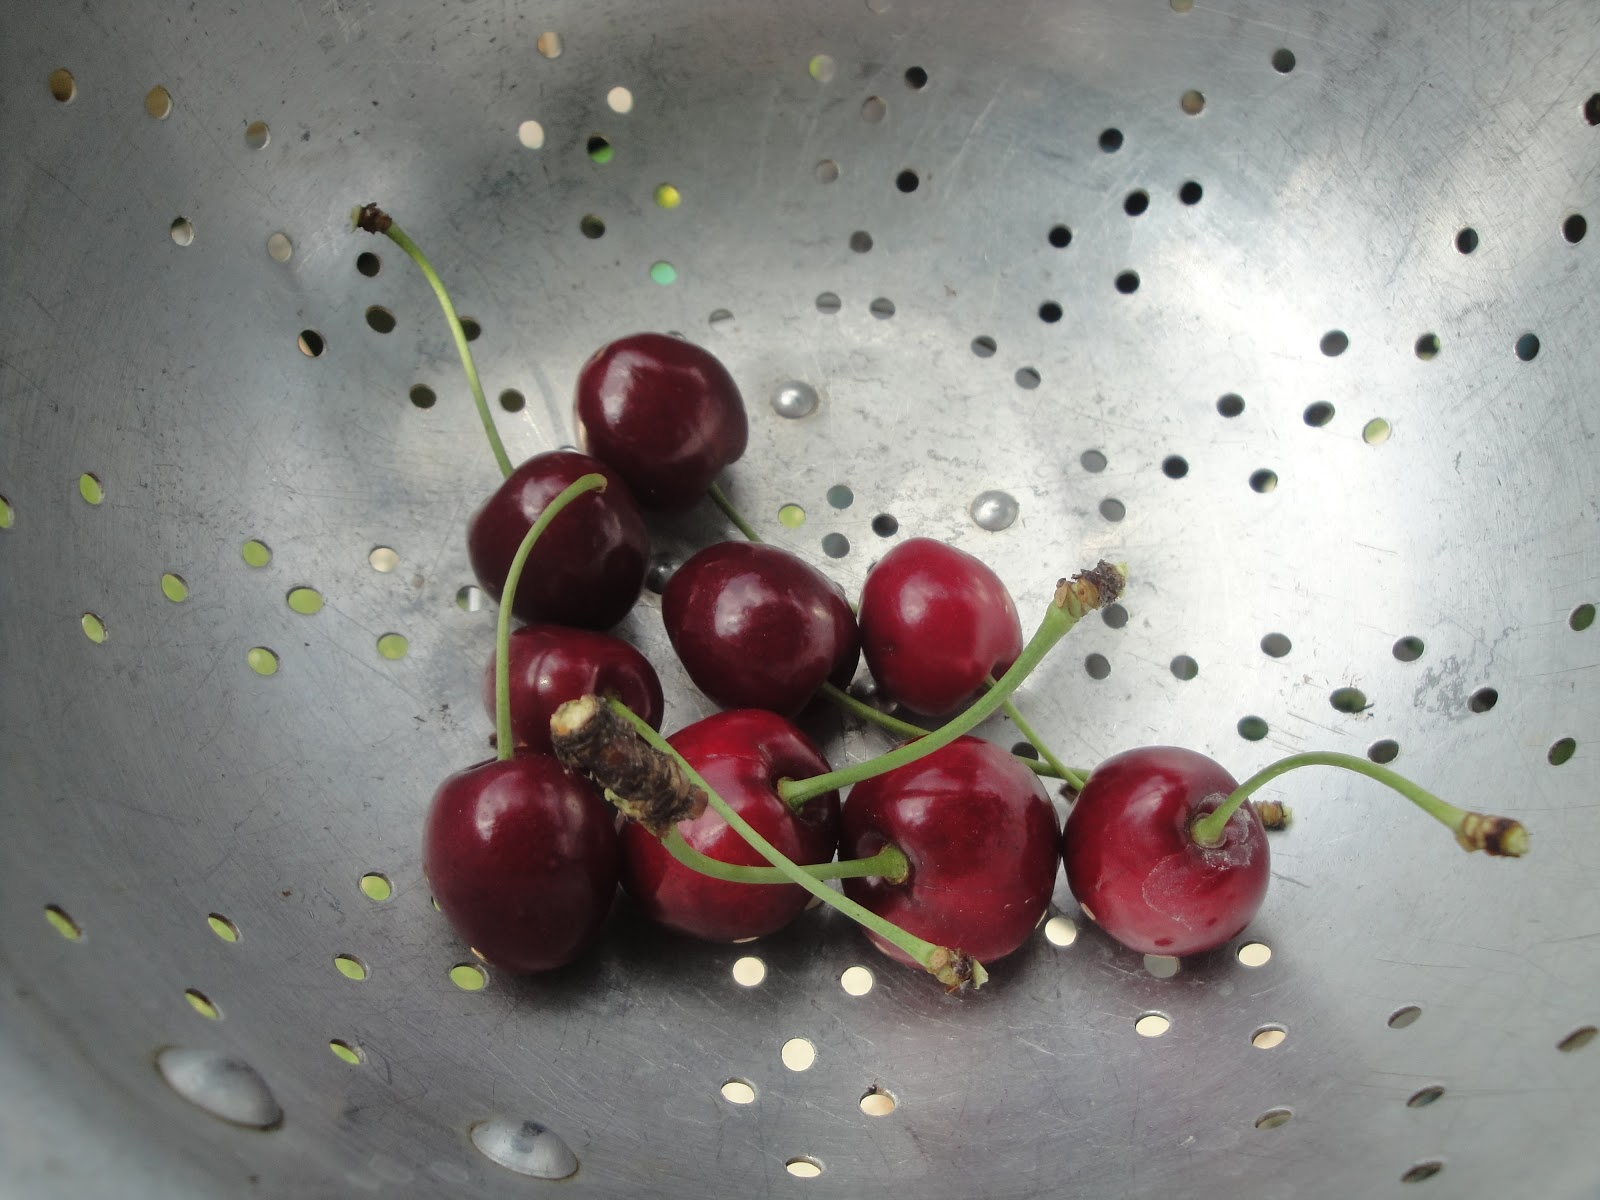 A group of cherries in a colander.